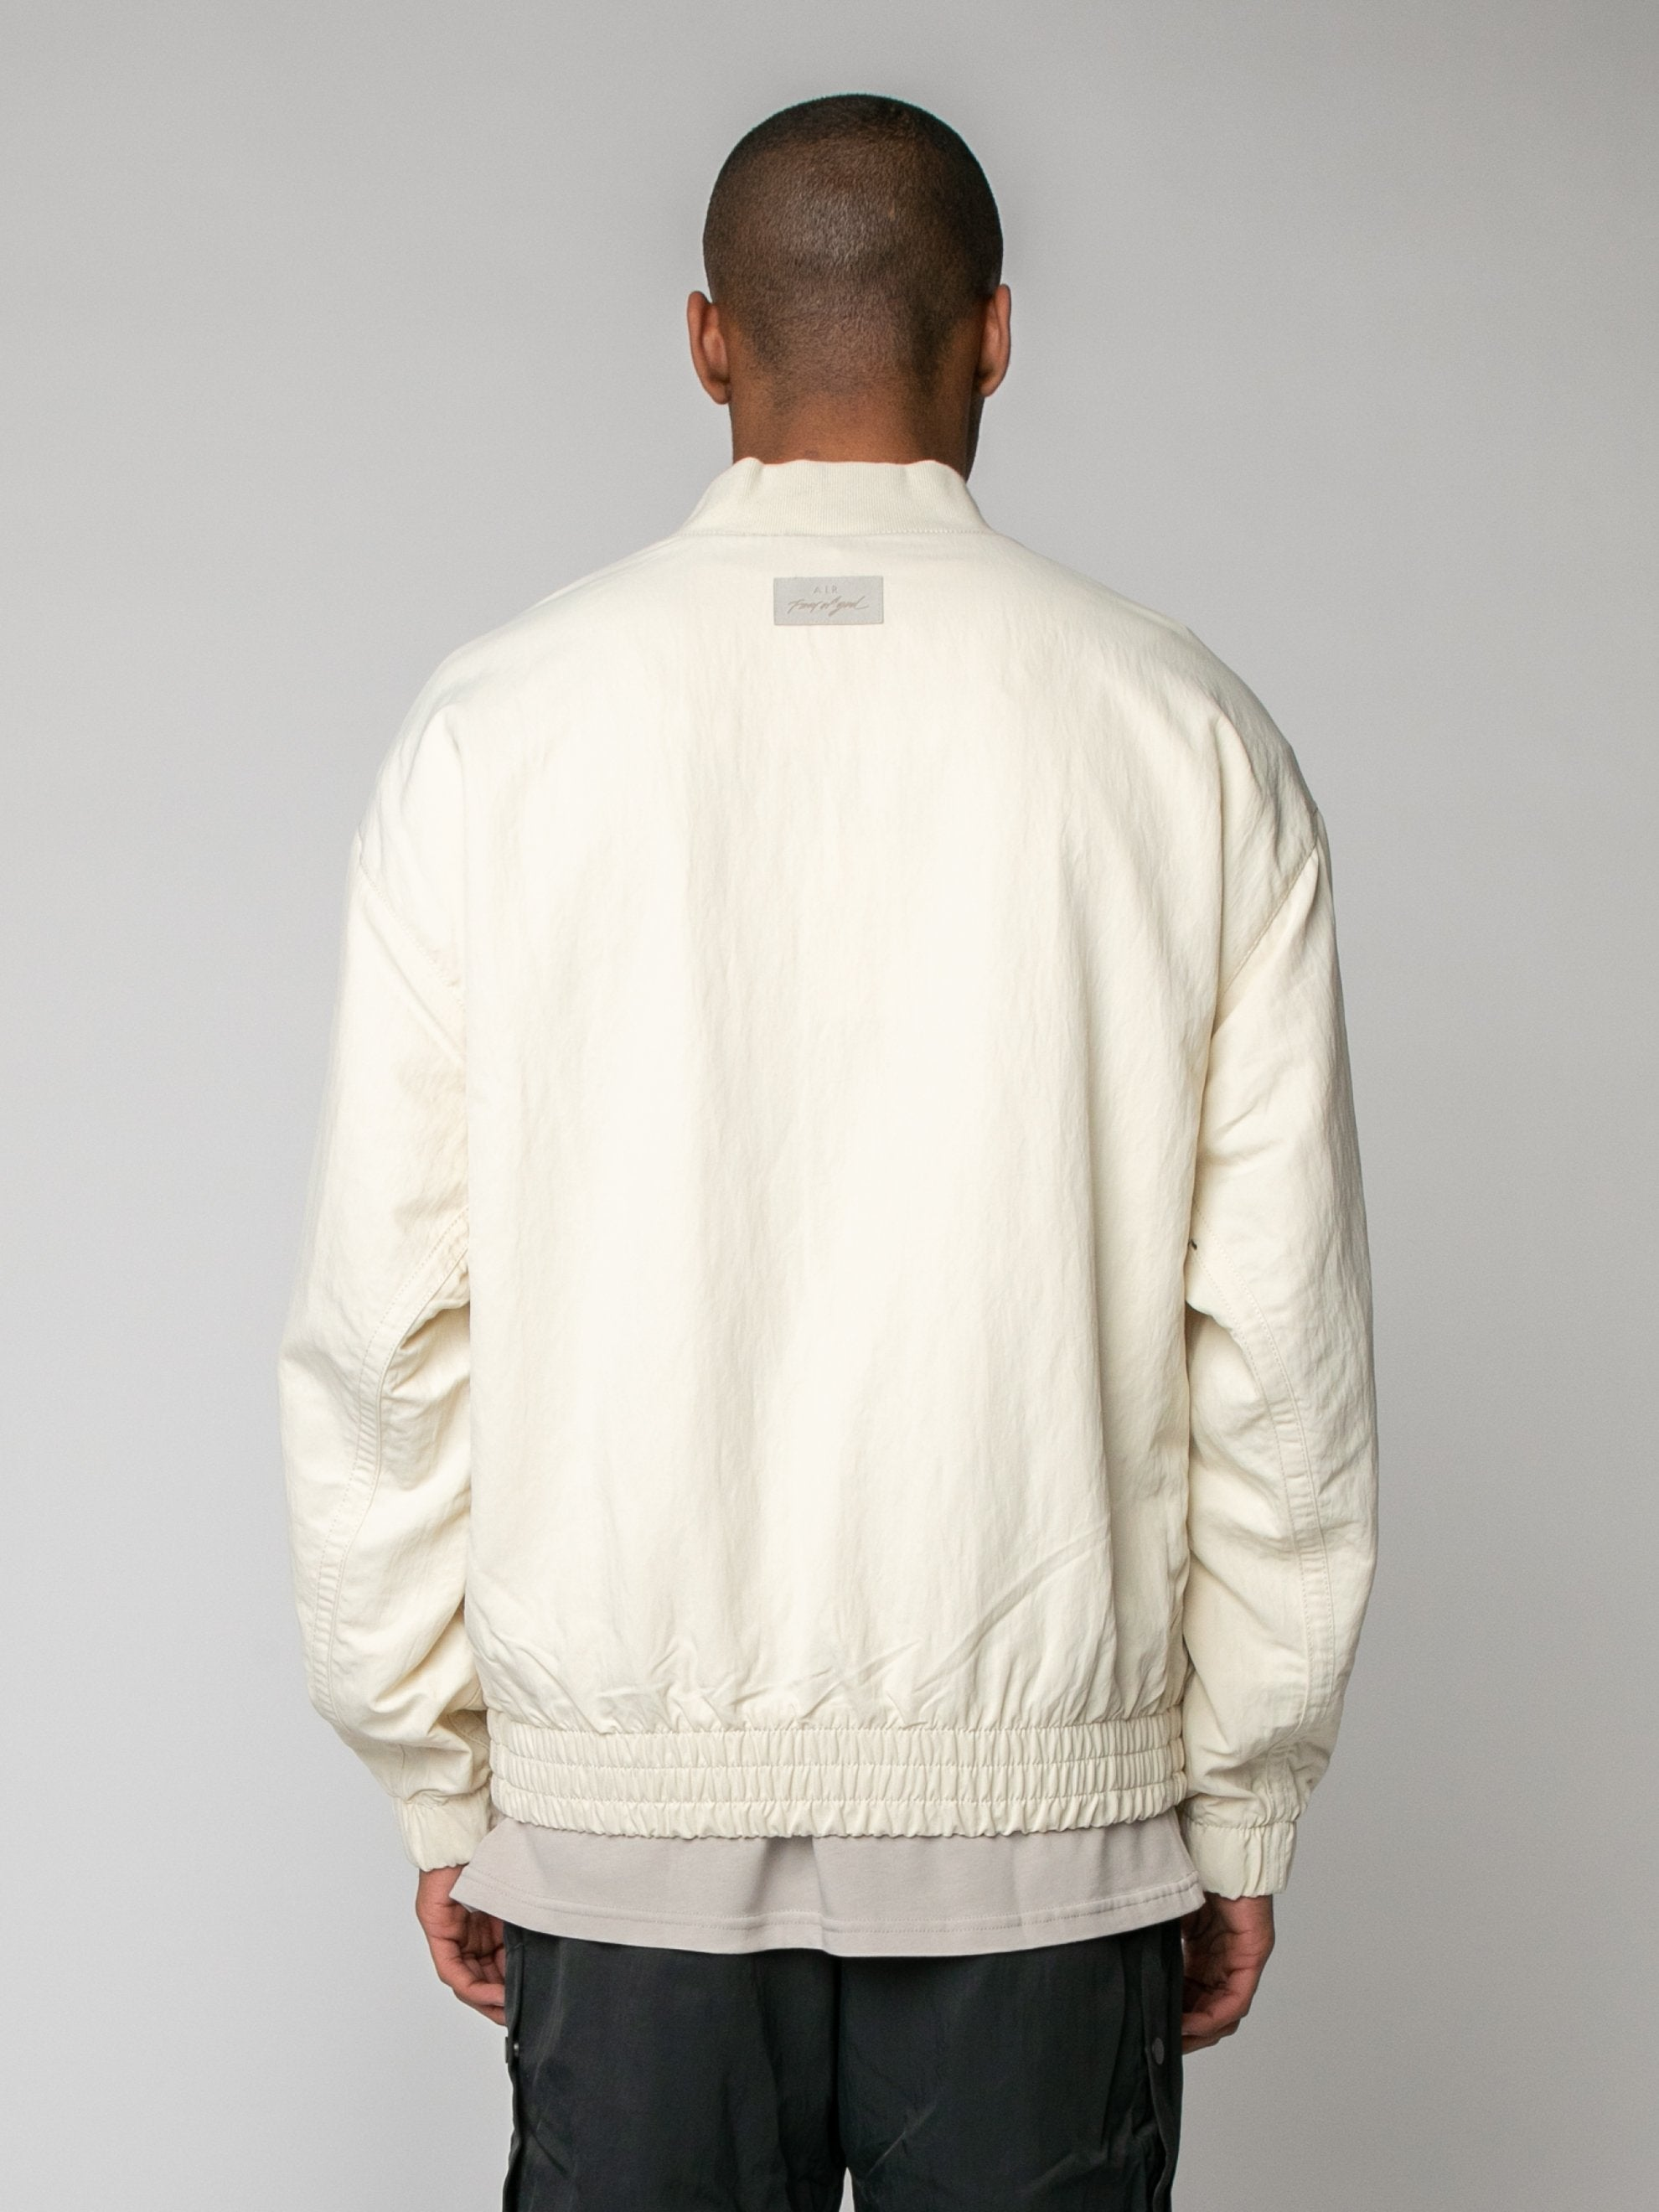 Light Cream Nike x Fear of God Basketball Jacket 6